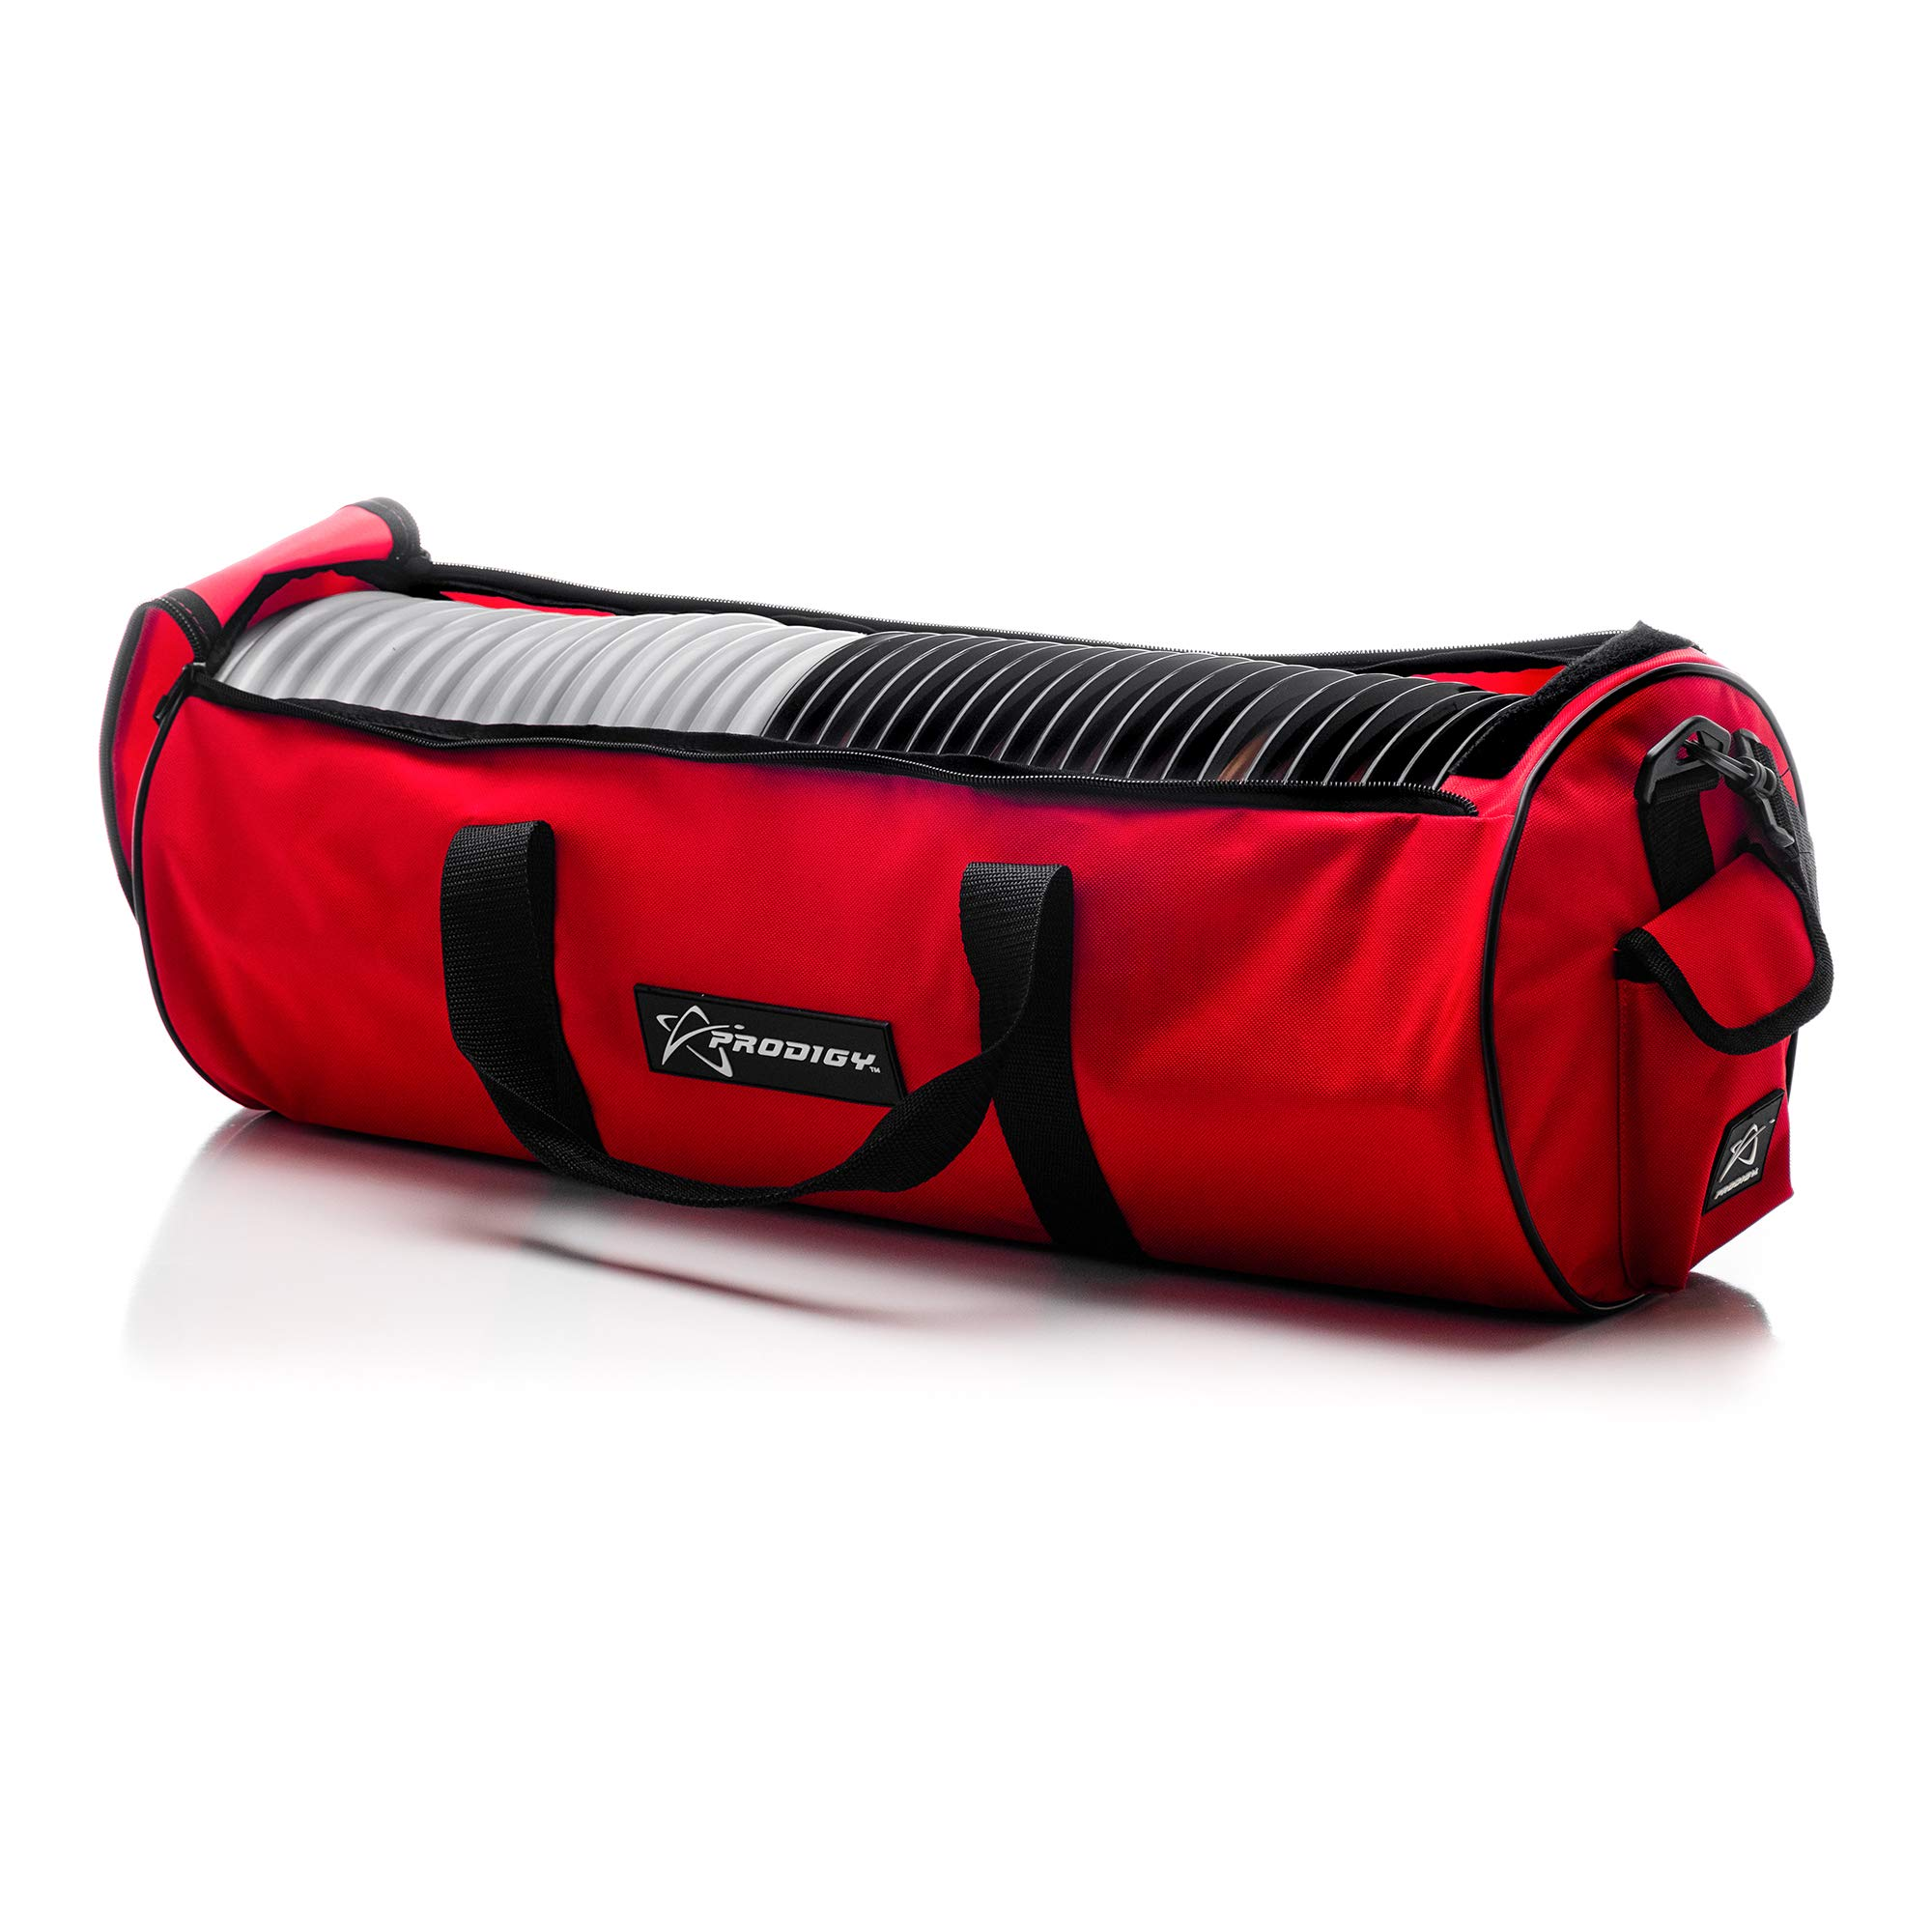 Prodigy Disc Practice Bag V2 - Disc Golf Bag - 30-45 Discs - Stay Organized for Travel or Field Work (Red)